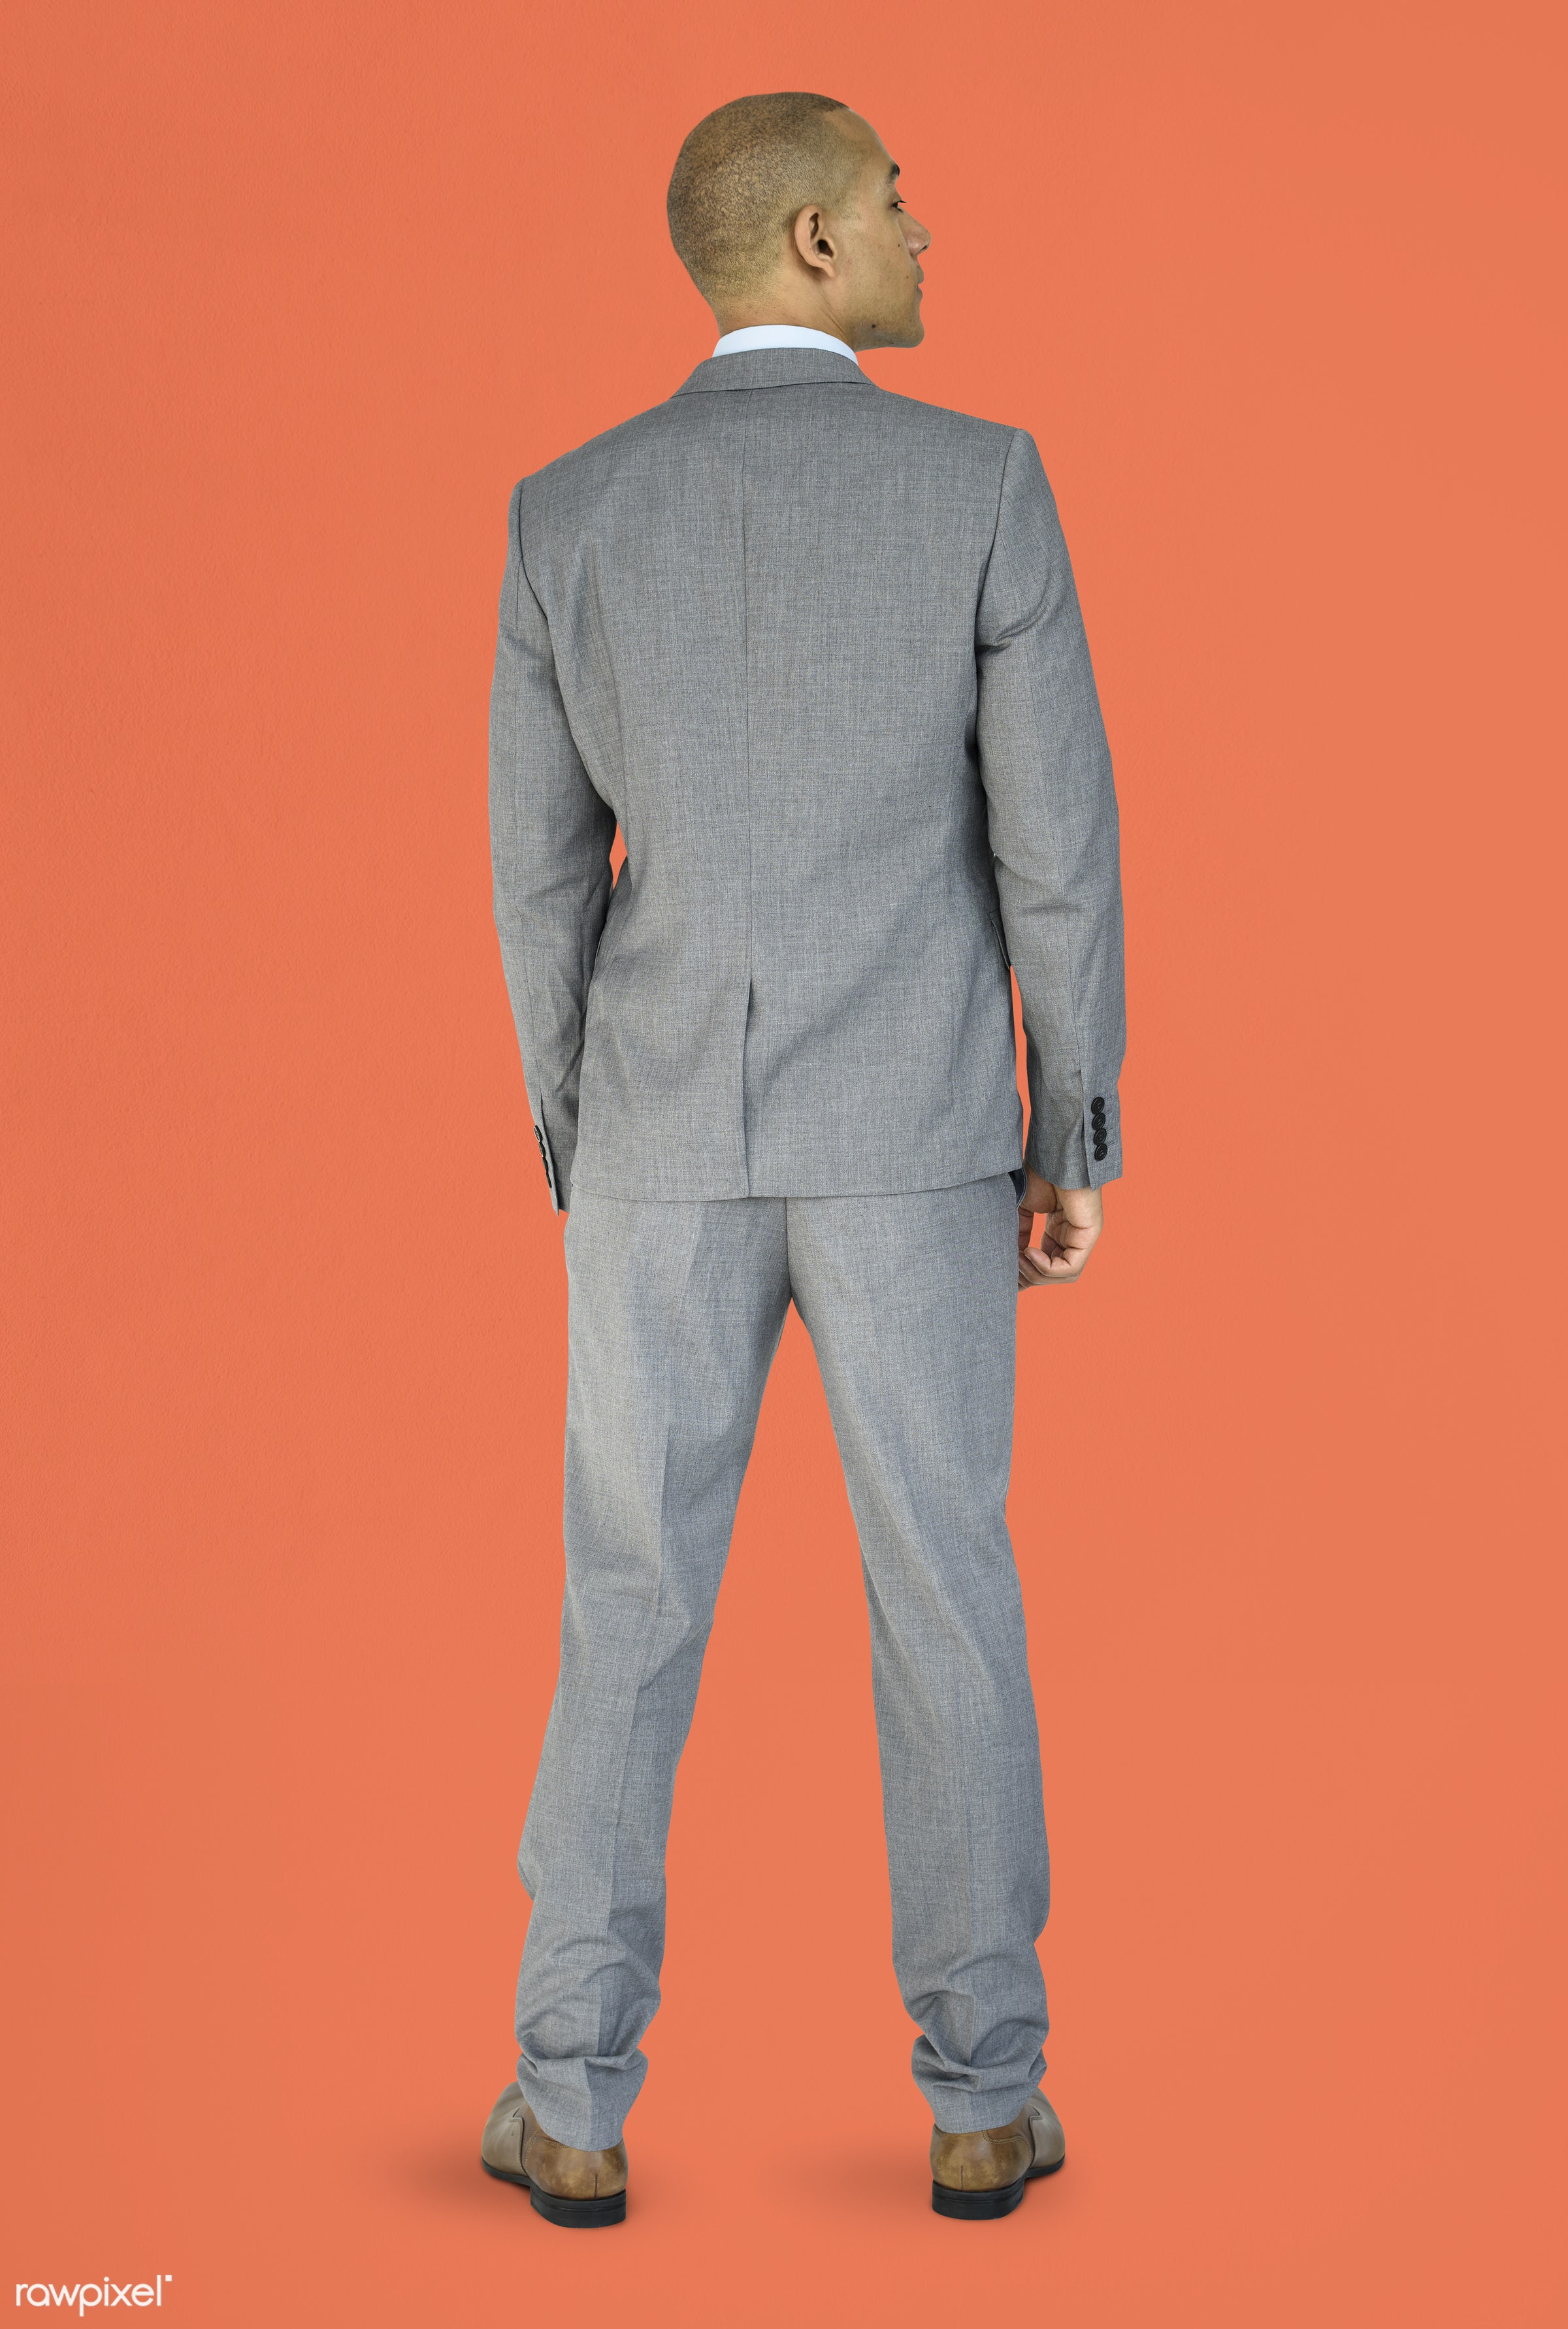 studio, person, people, business, businessman, man, abstract, rear view, isolated, orange, male, adult, portrait, formal,...